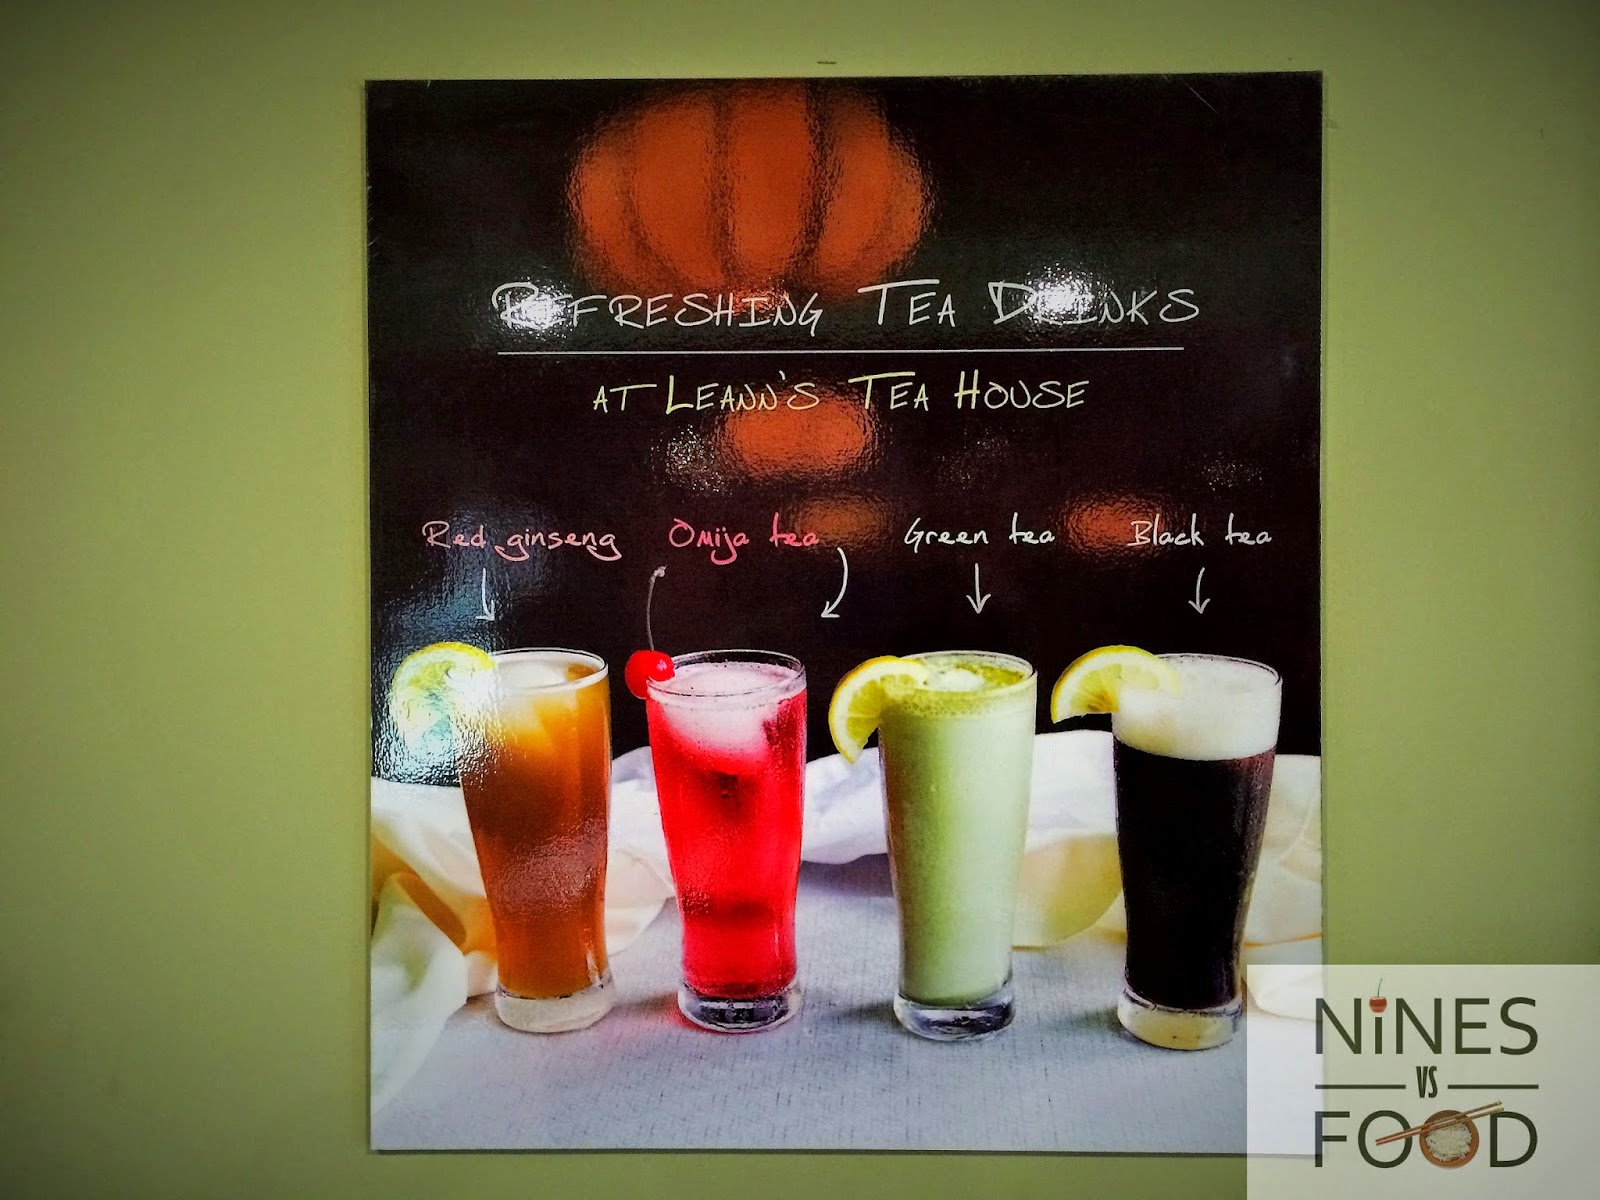 Nines vs. Food - Leann's Tea House Quezon City-5.jpg